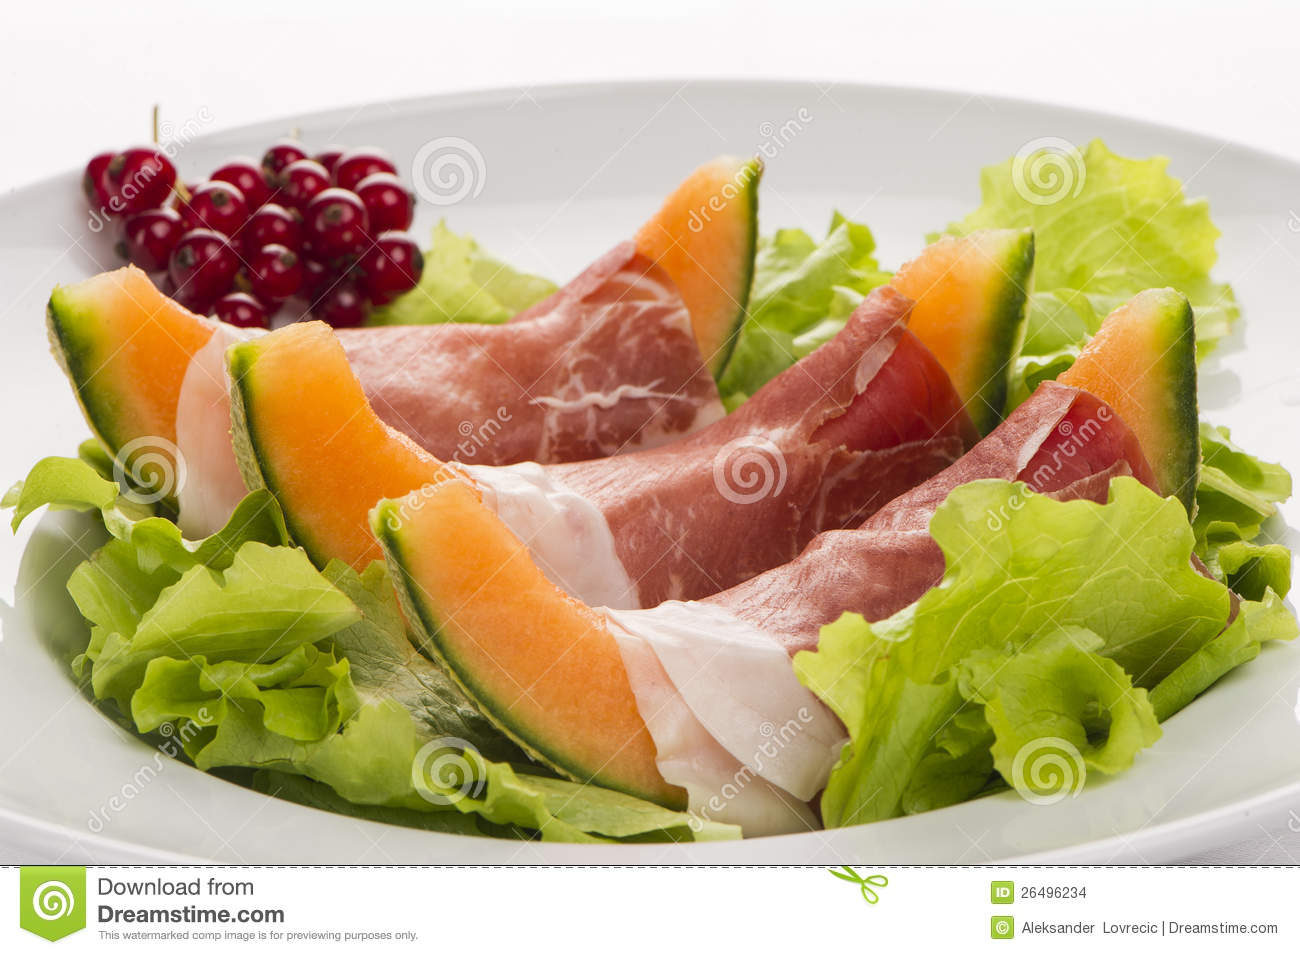 Prosciutto, Melon, Salad Leaf And Currants Stock Images - Image ...